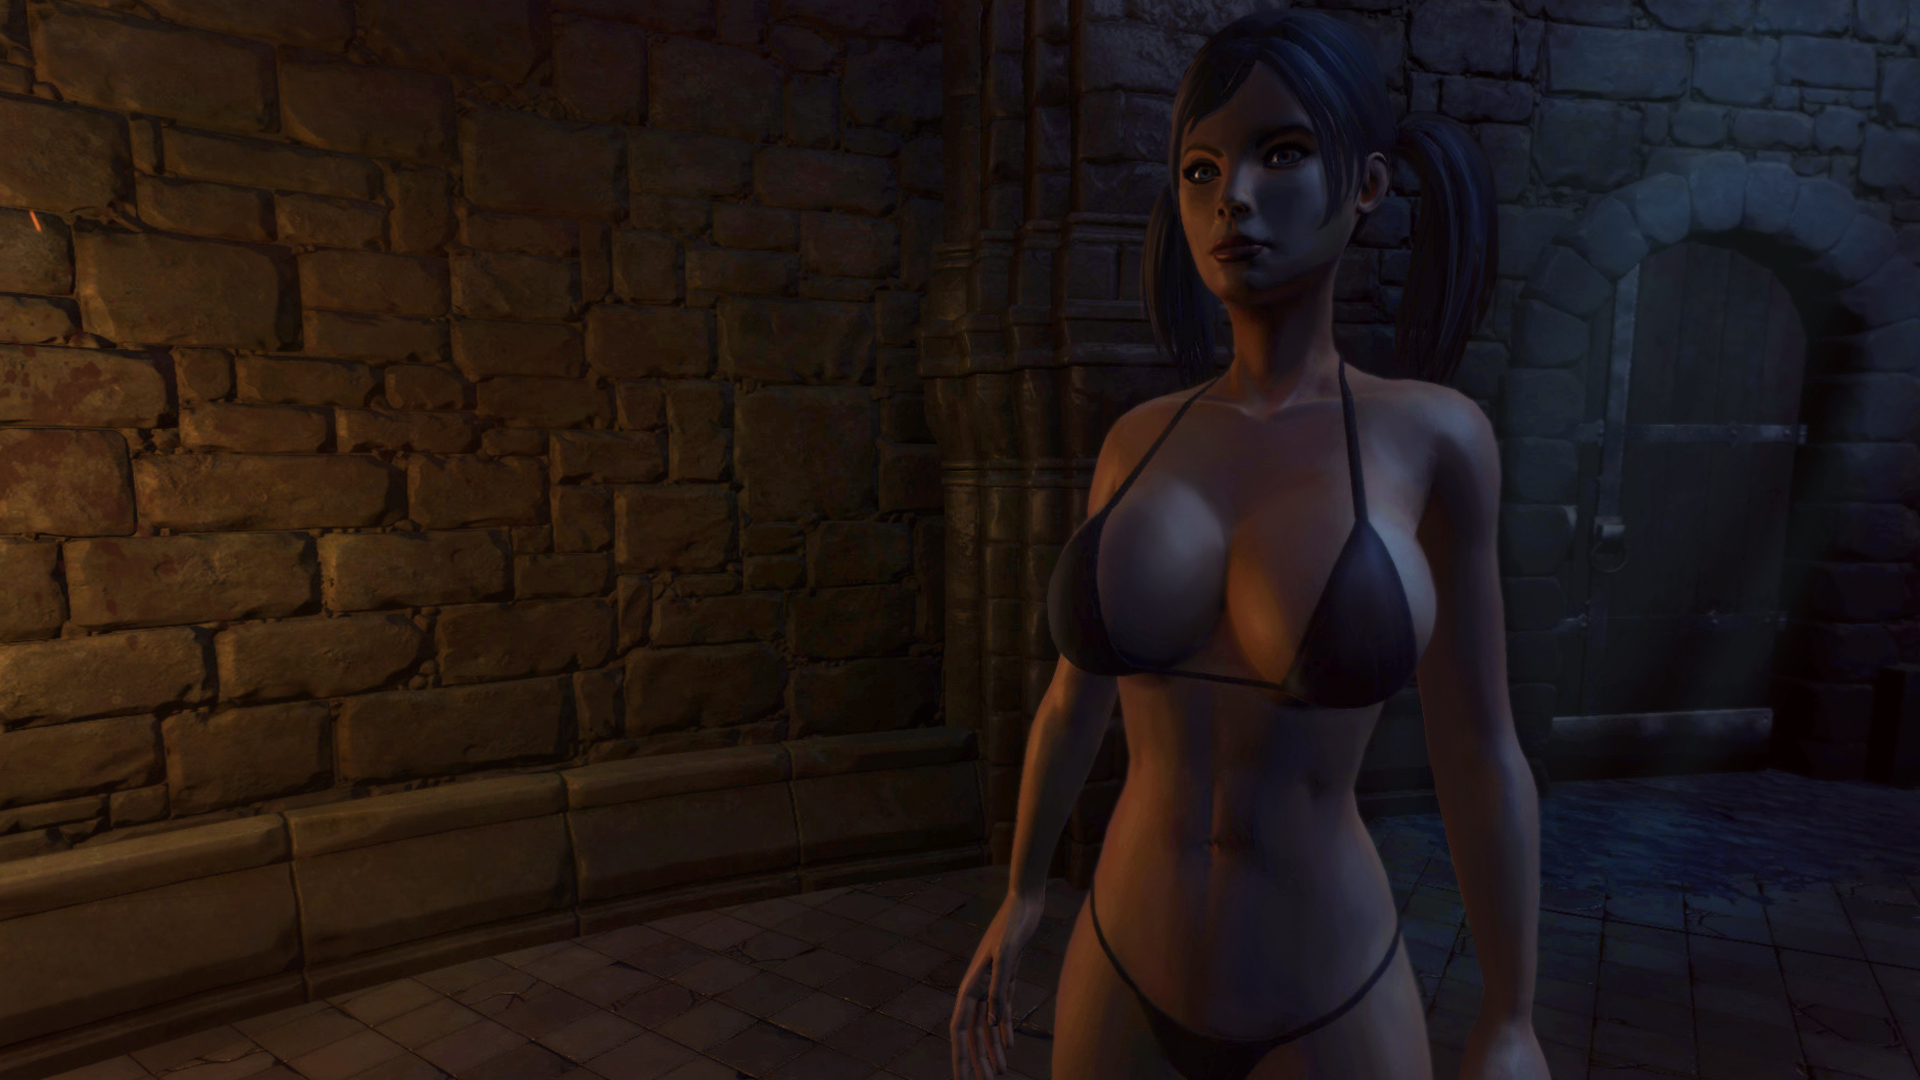 Free boobs games online